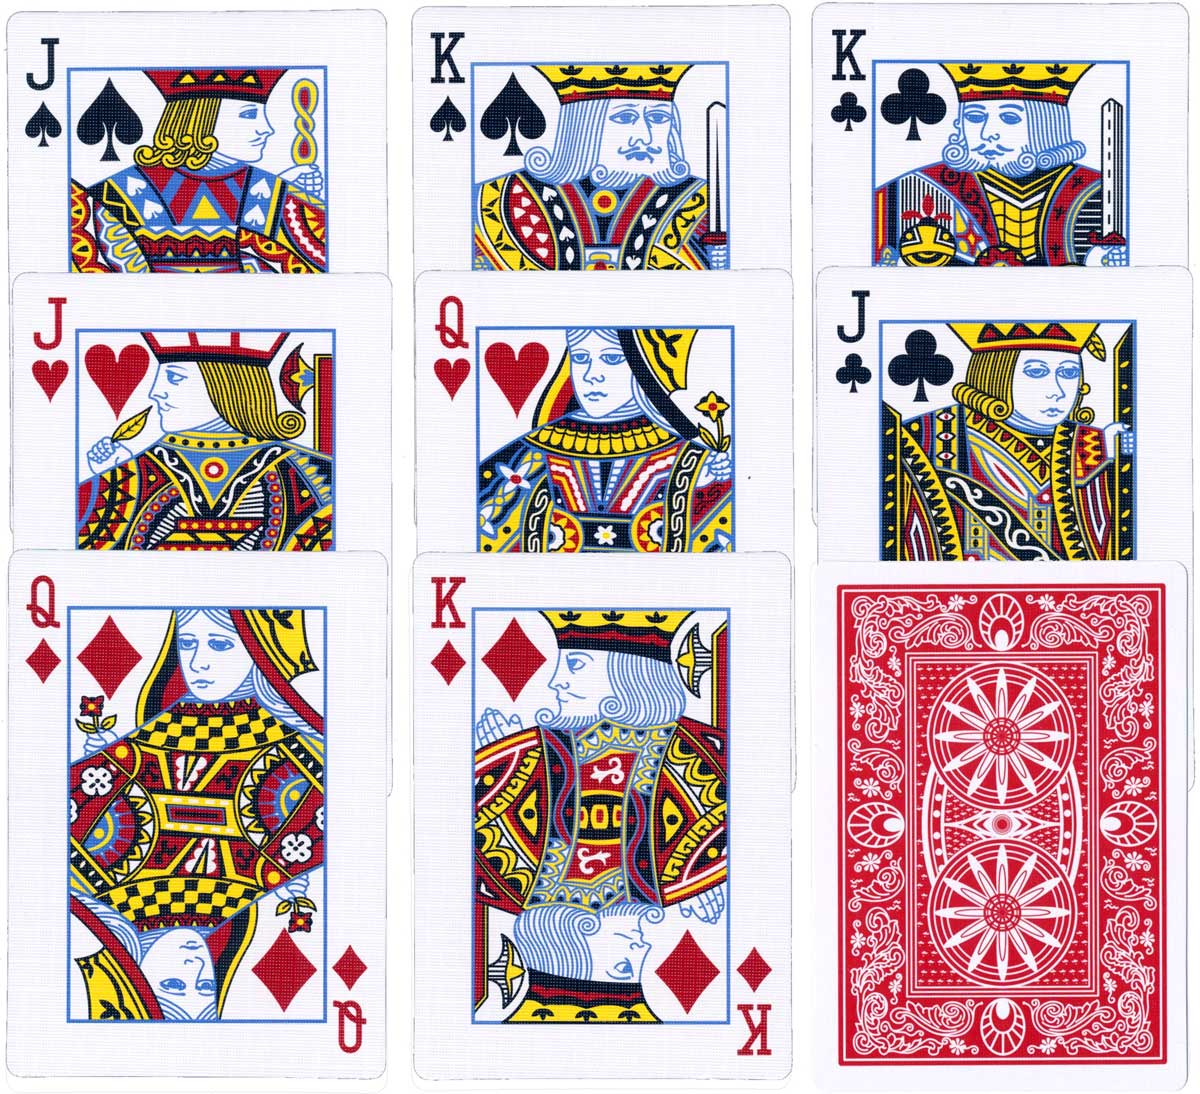 Ridley's Magic Trick Cards, 2011